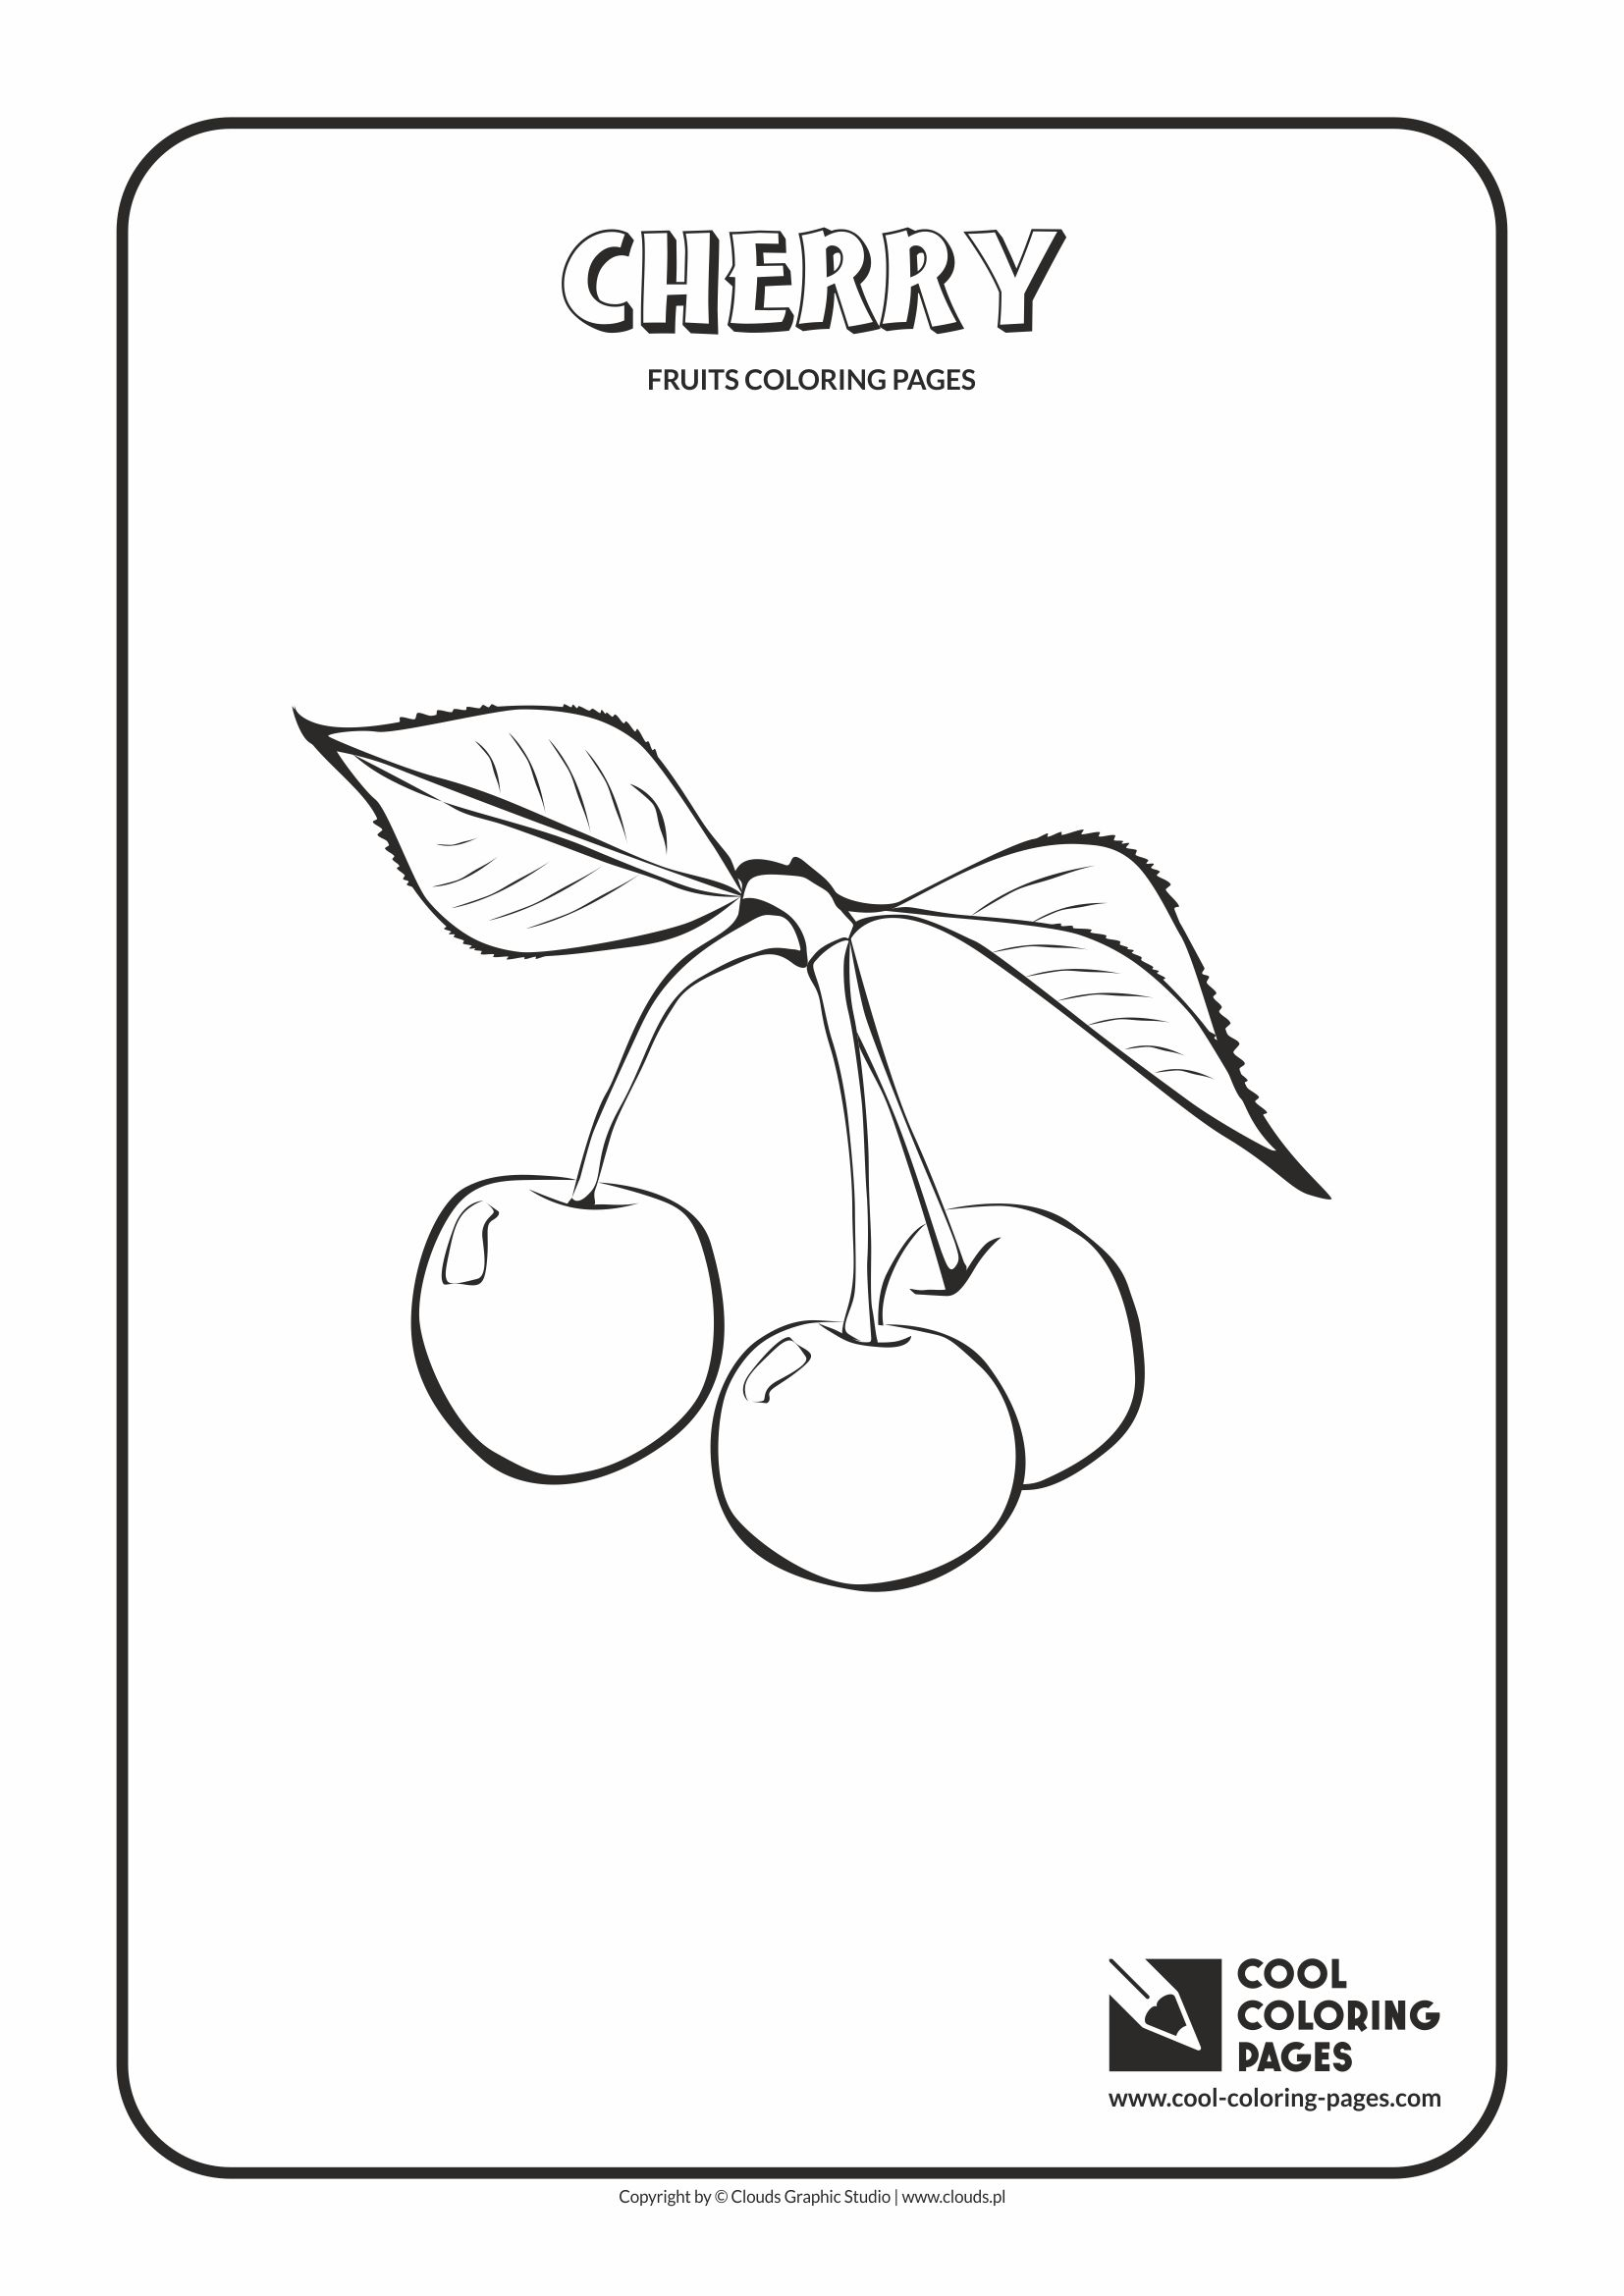 Cool Coloring Pages - Plants / Cherry / Coloring page with cherry